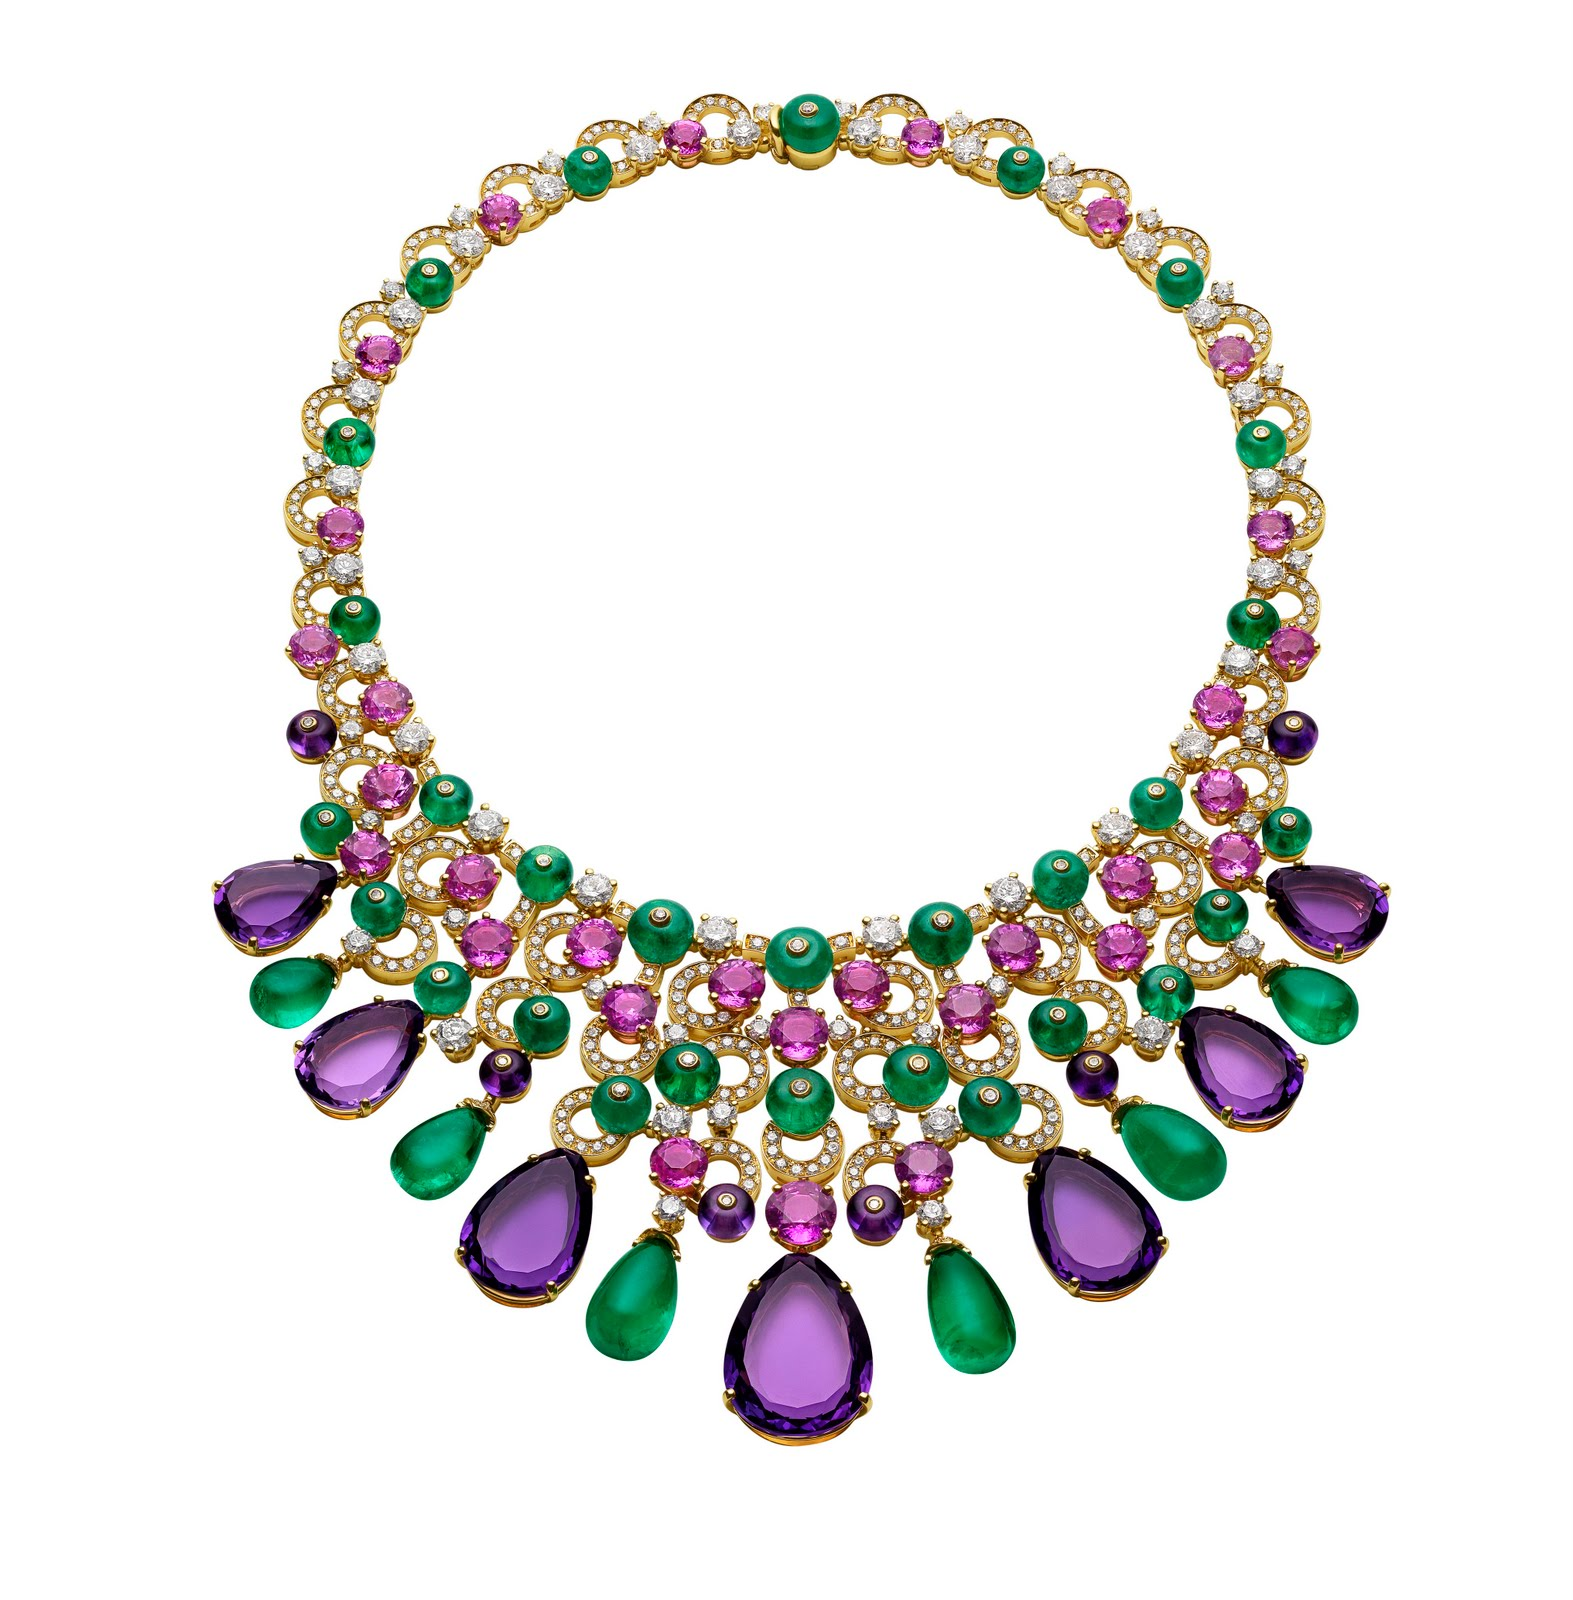 Bulgari Releases Its New Emerald And Gold High Jewellery